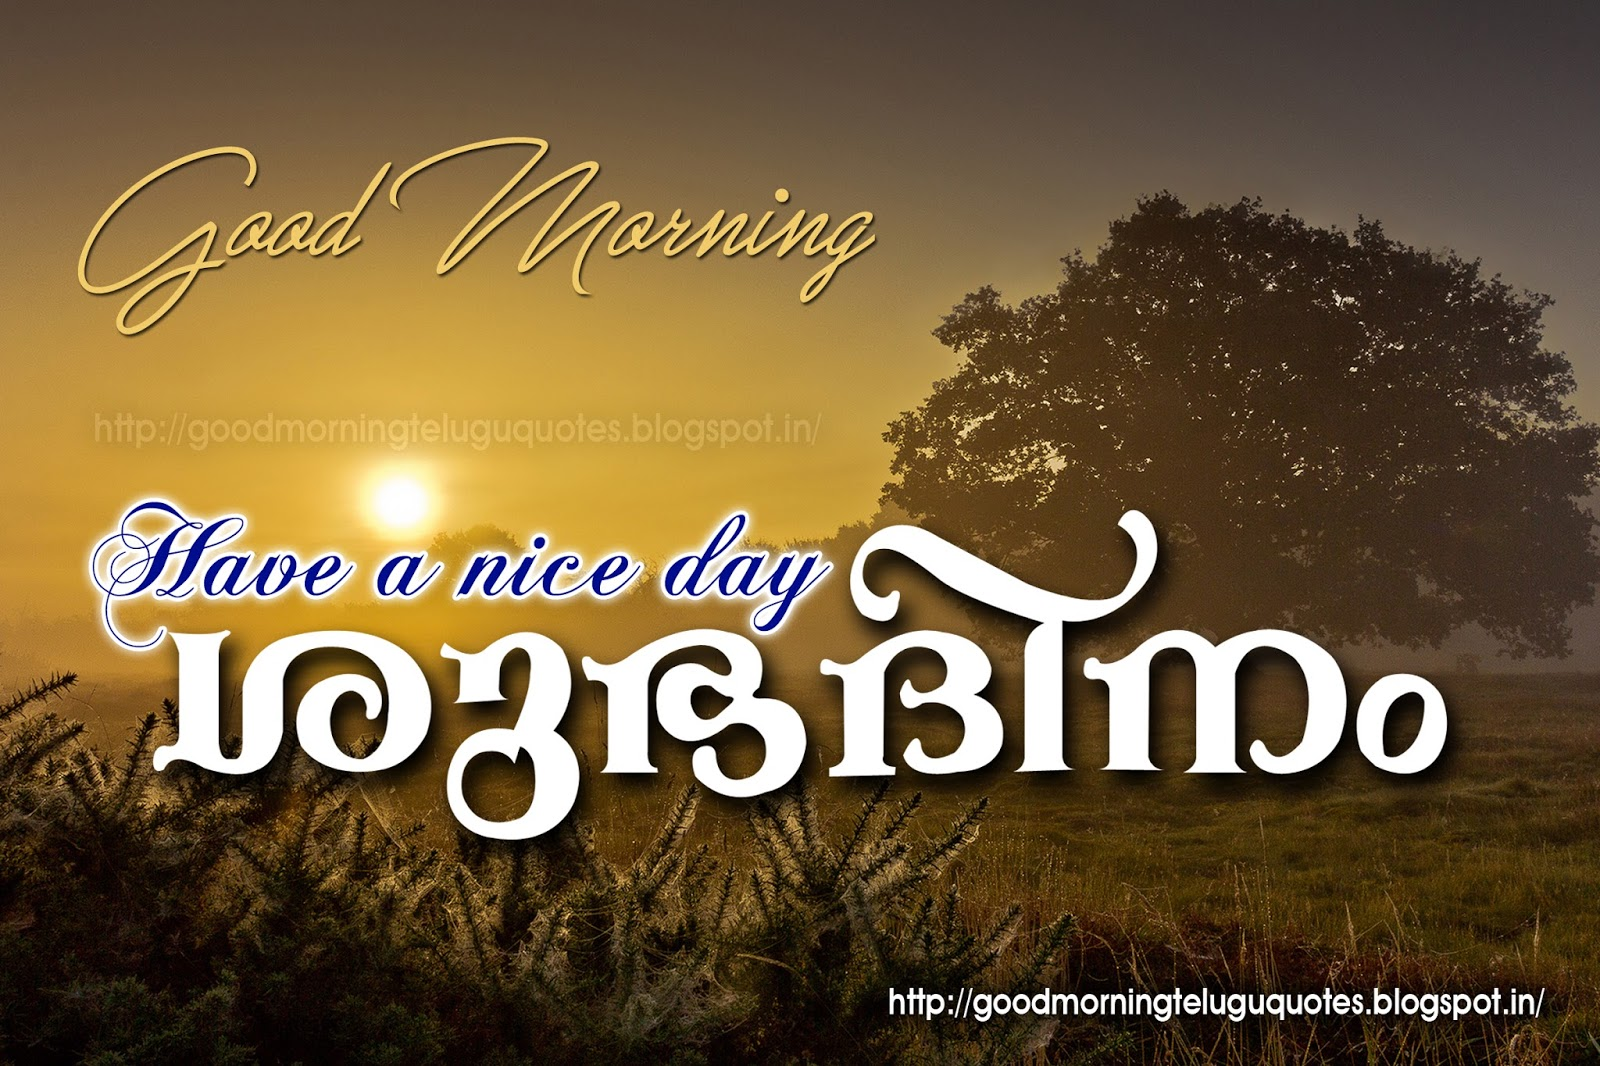 Good Morning Wishes And Malayalam Quotes With Nice Images